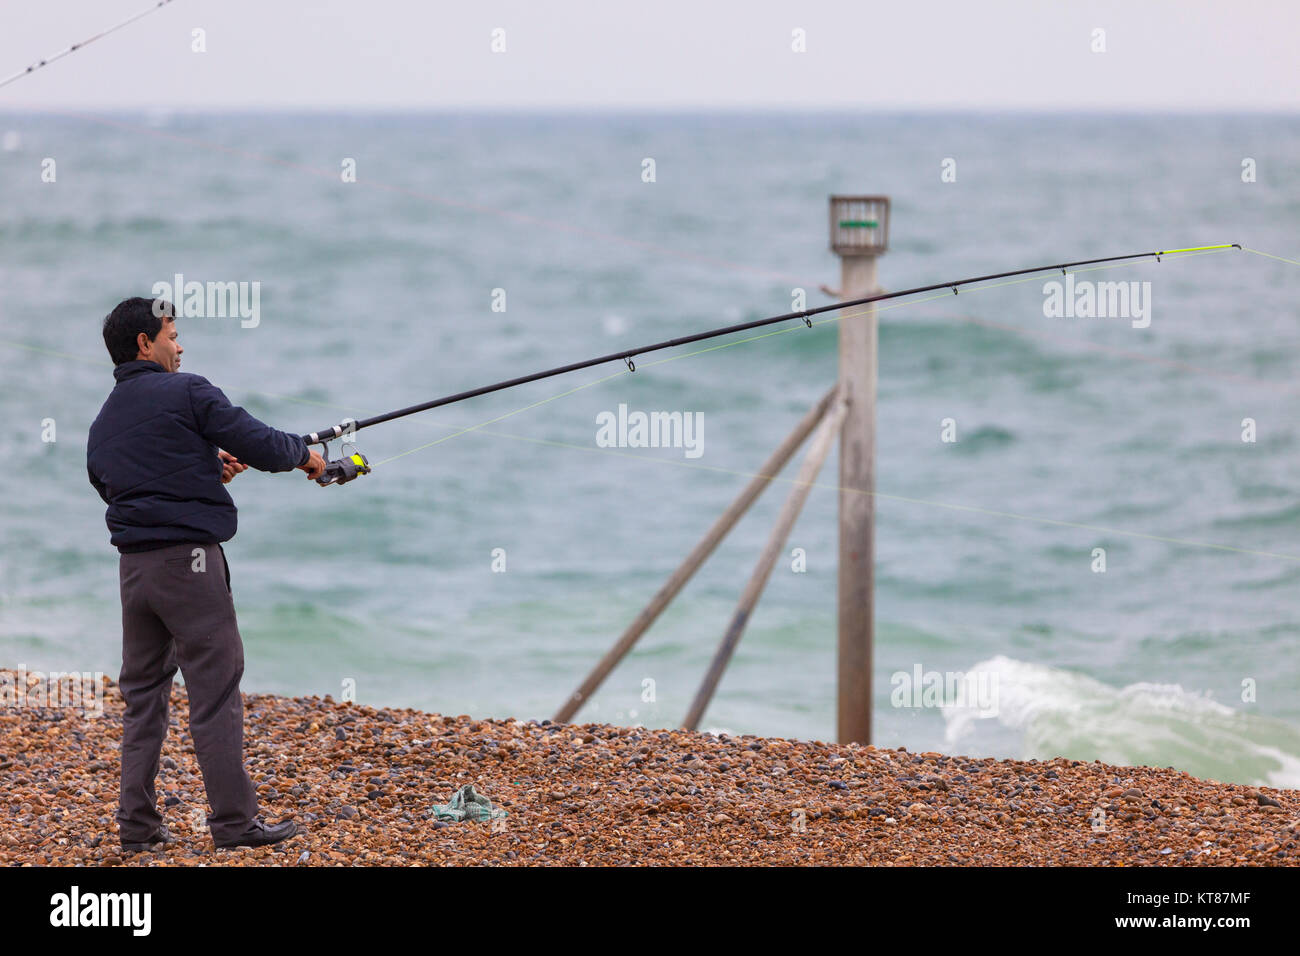 casting off; Stock Photo